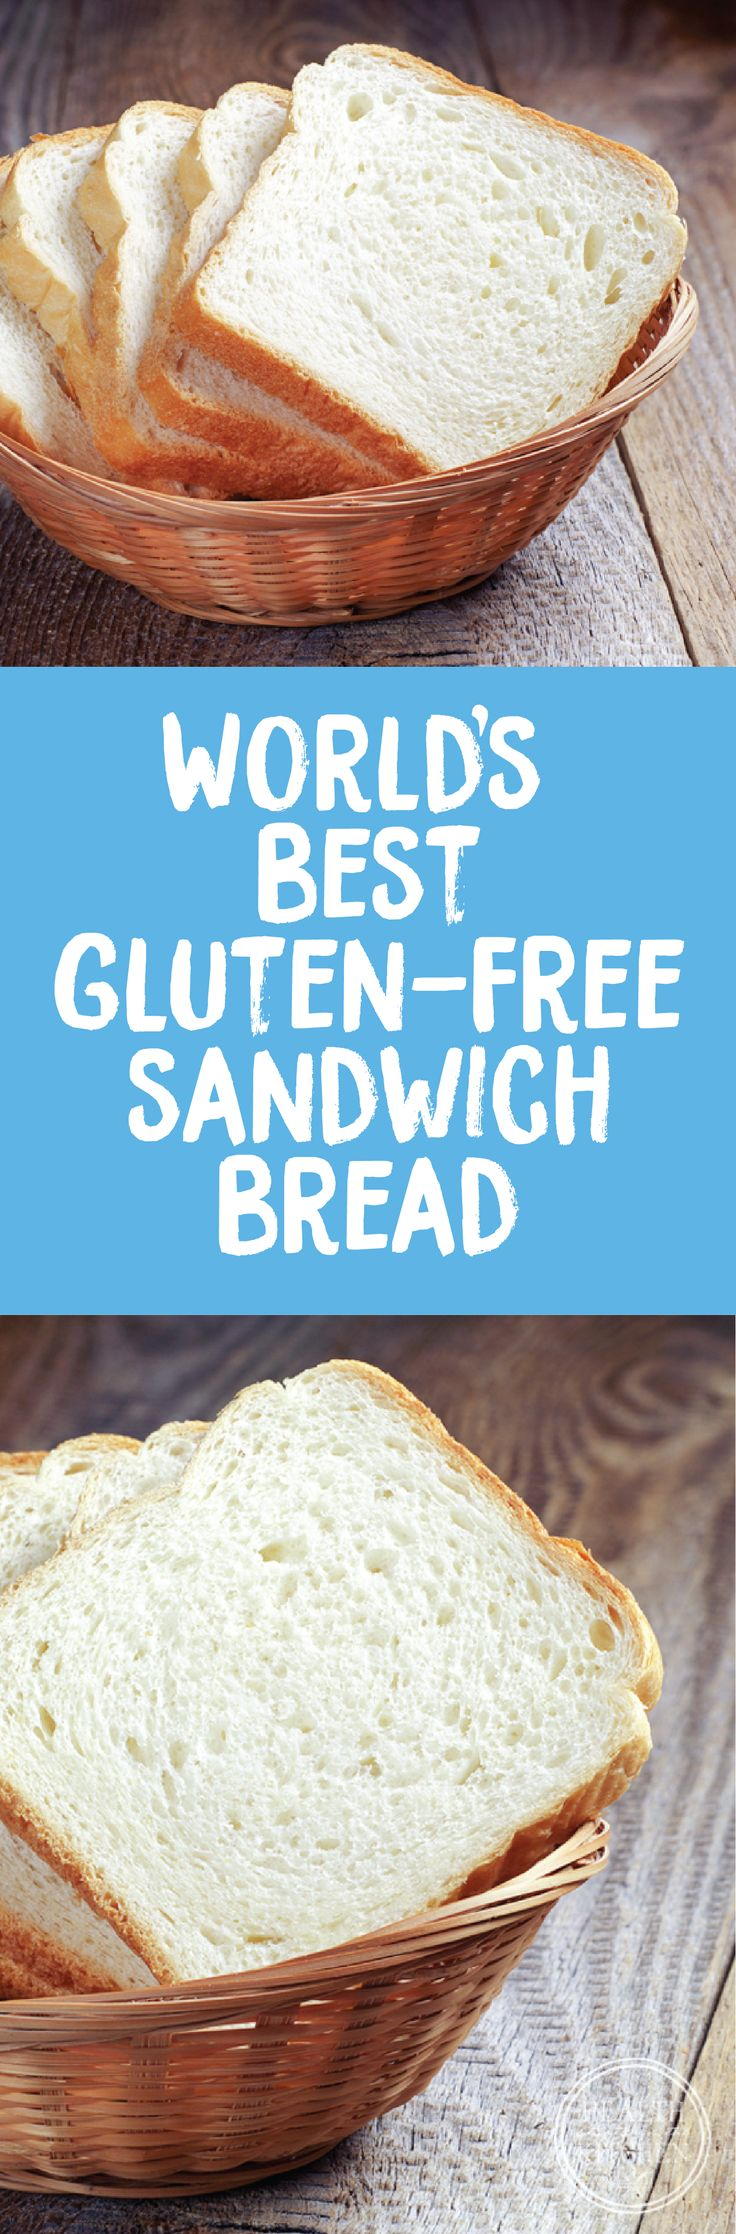 World's Best Gluten-Free Sandwich Bread - Simply Amazing and so easy to make!